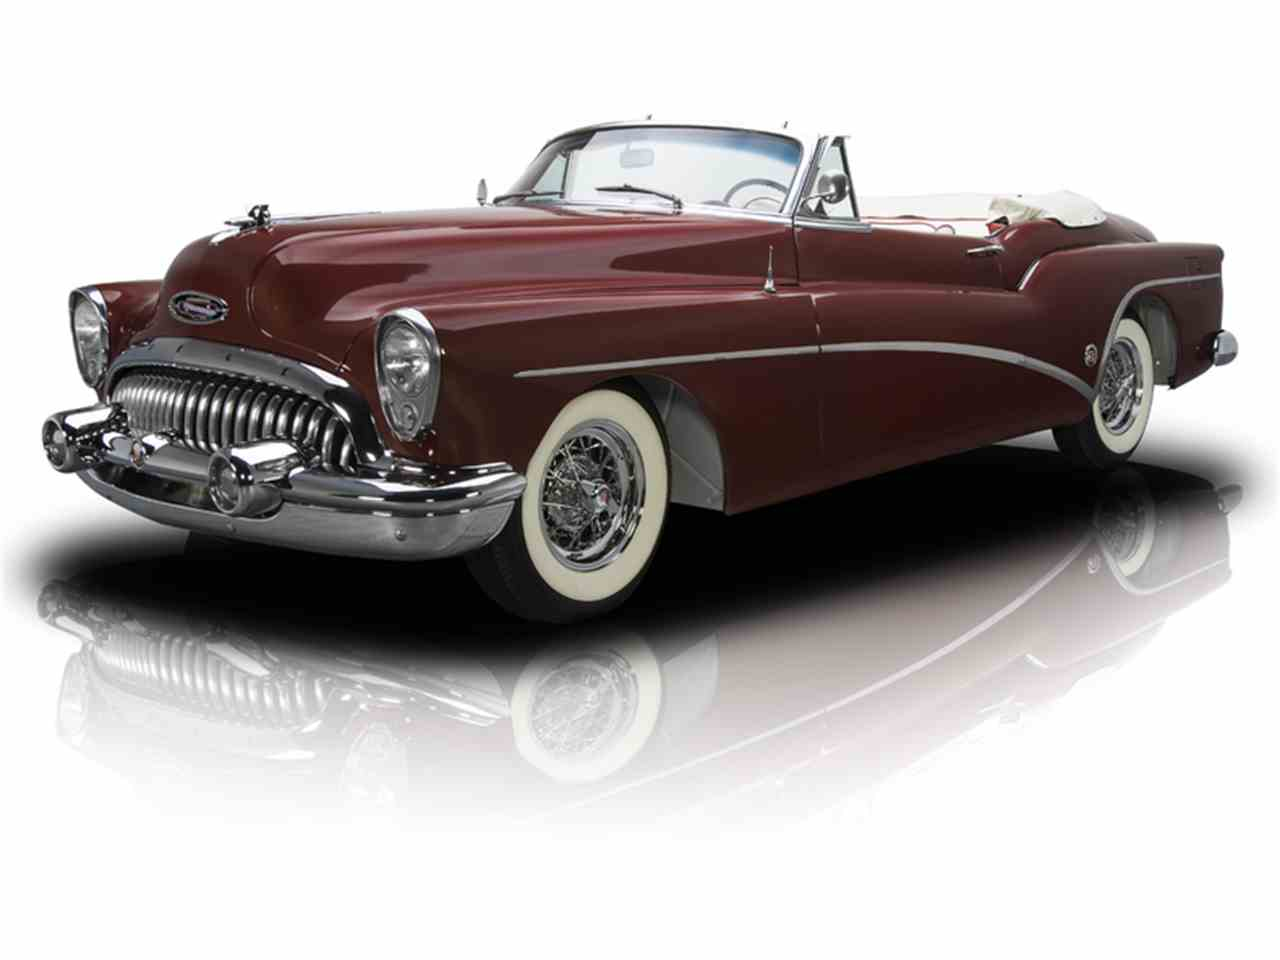 Large Picture of '53 Buick Skylark located in Charlotte North Carolina - $159,900.00 - GU8J